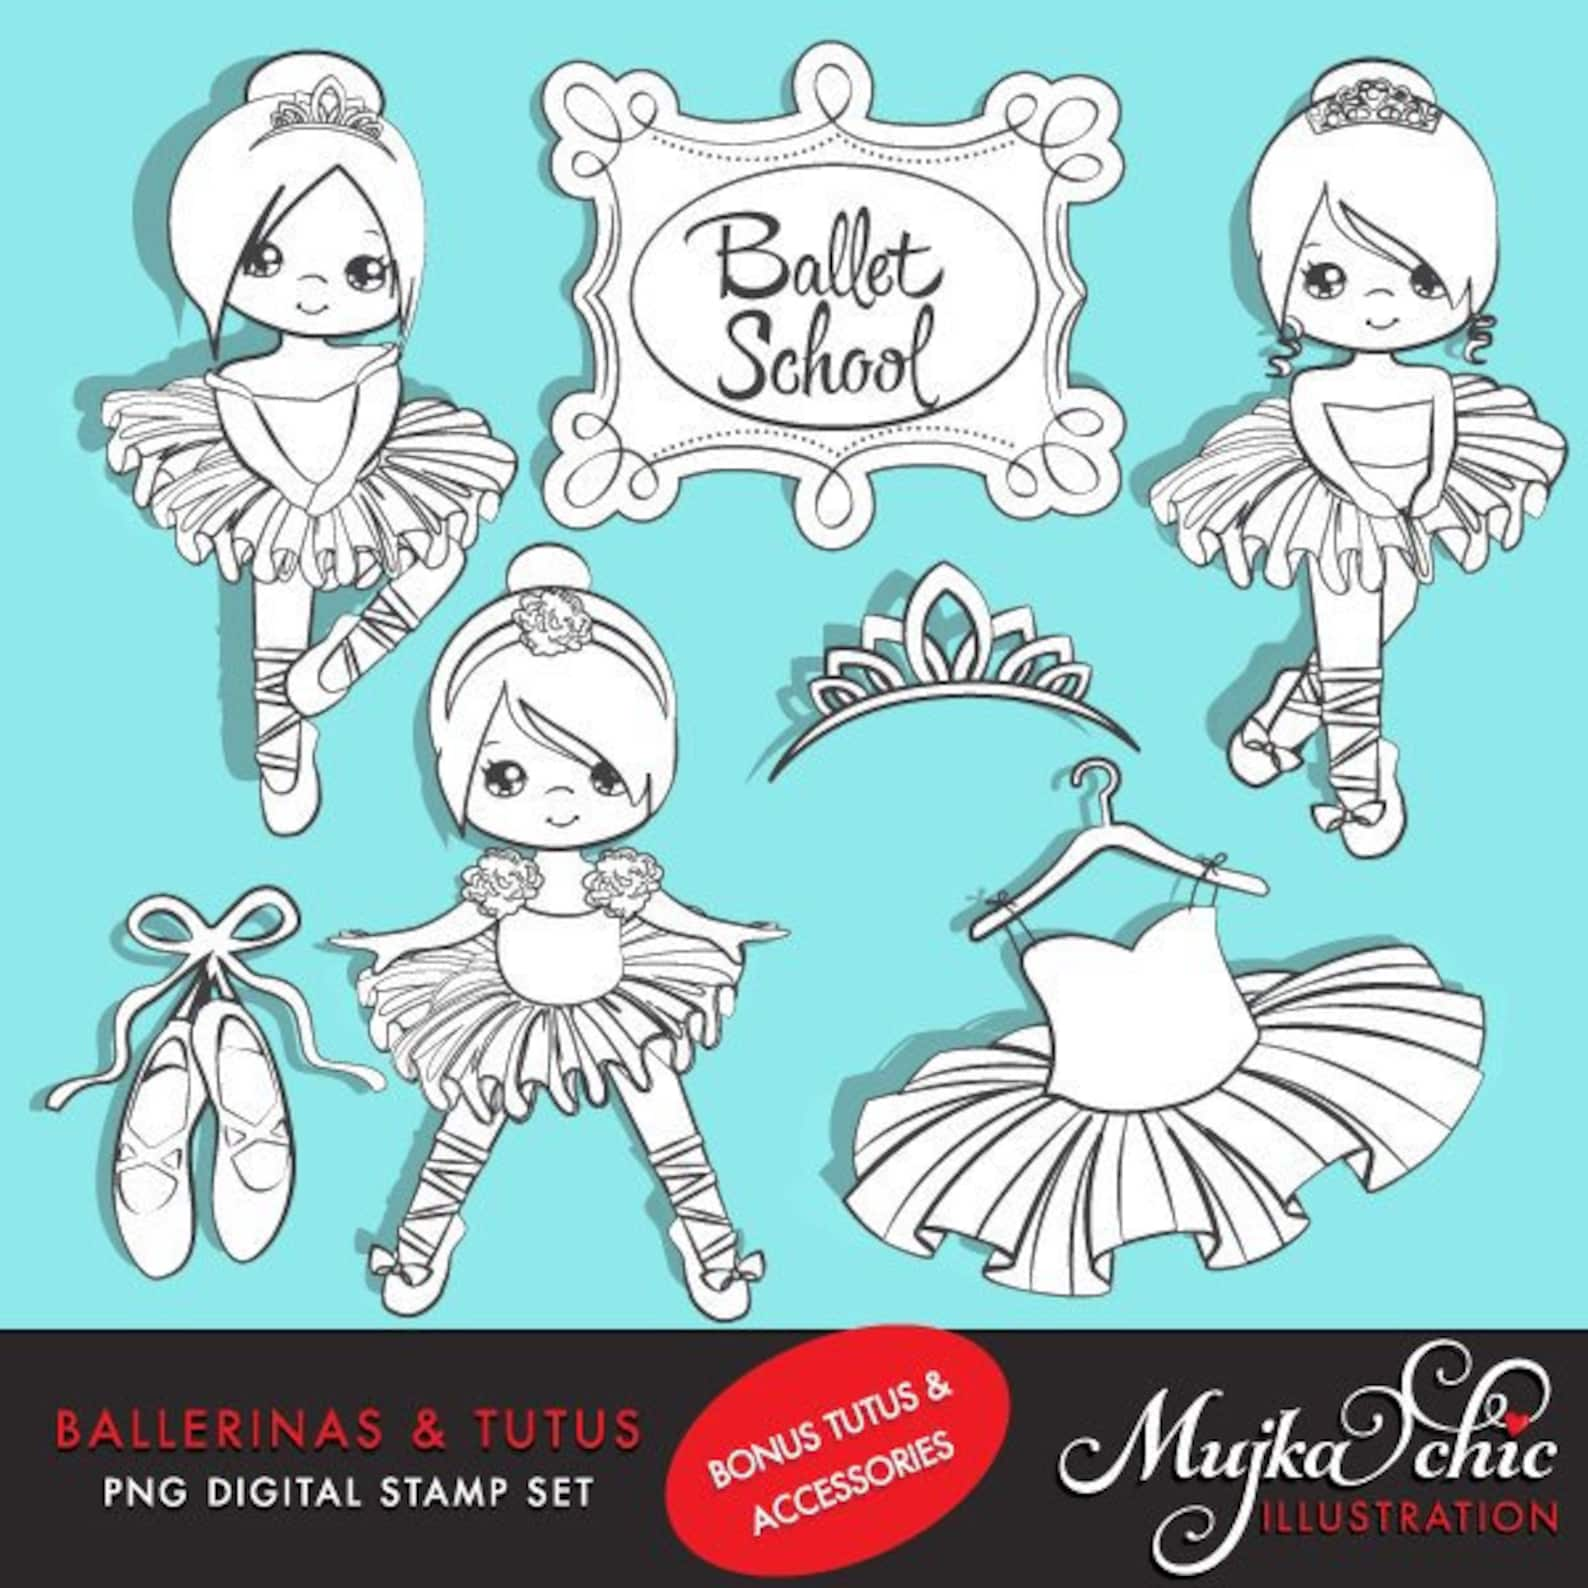 ballerina digital stamps with cute characters, tutus, ballet shoes, outline coloring art, dancers, b&w graphics, commercial use